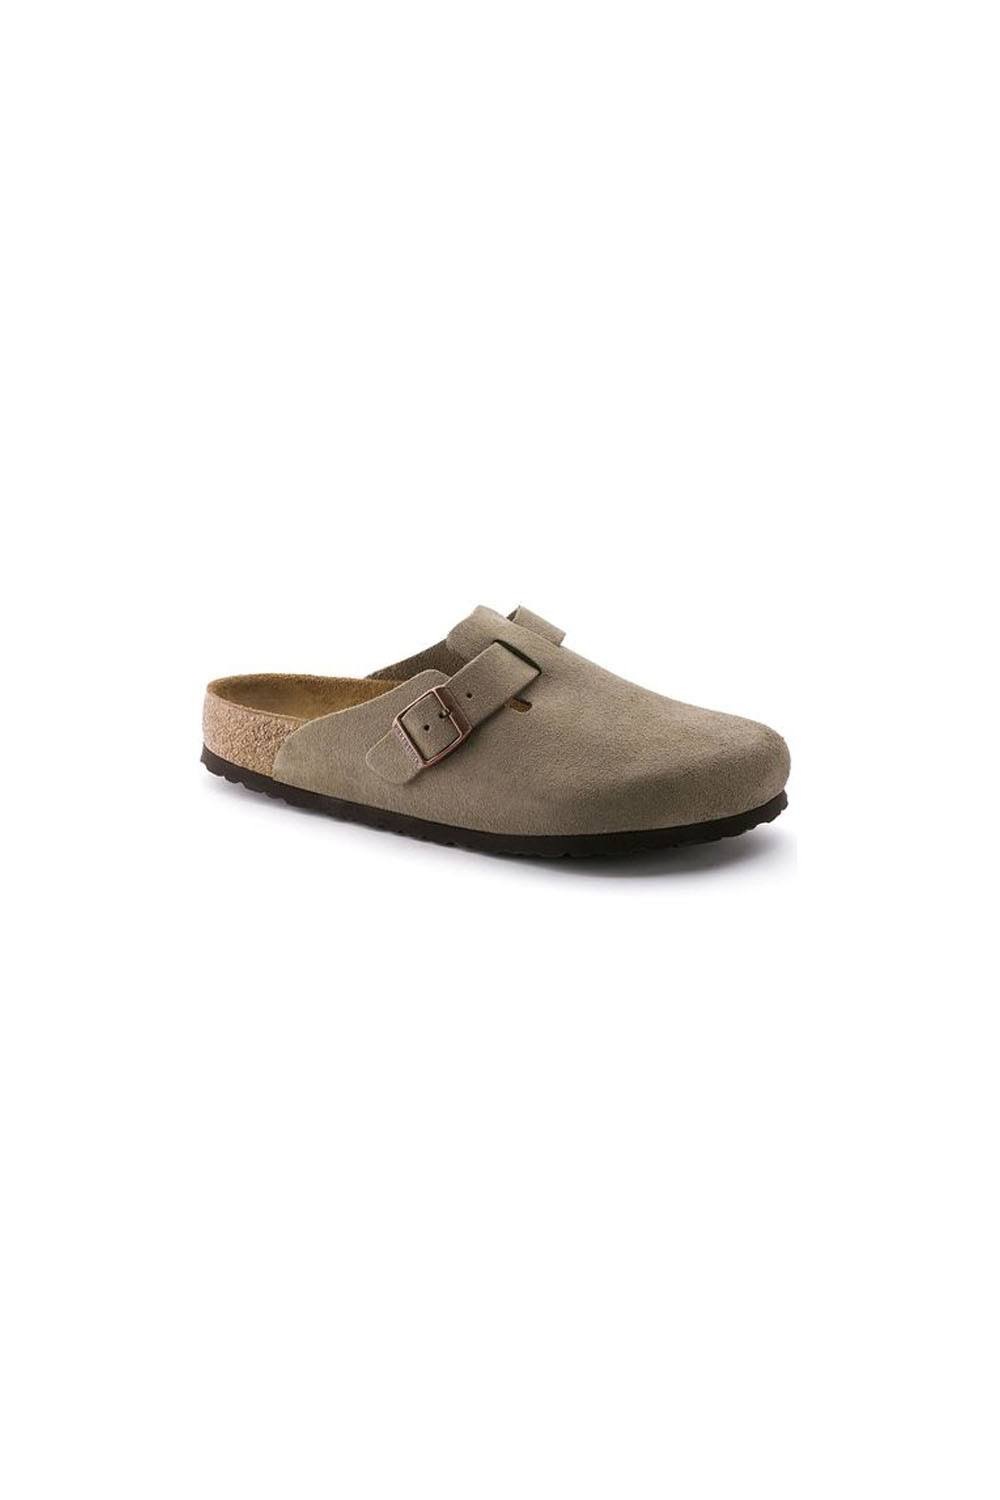 Birkenstock Women's Boston Soft Footbed Taupe Suede